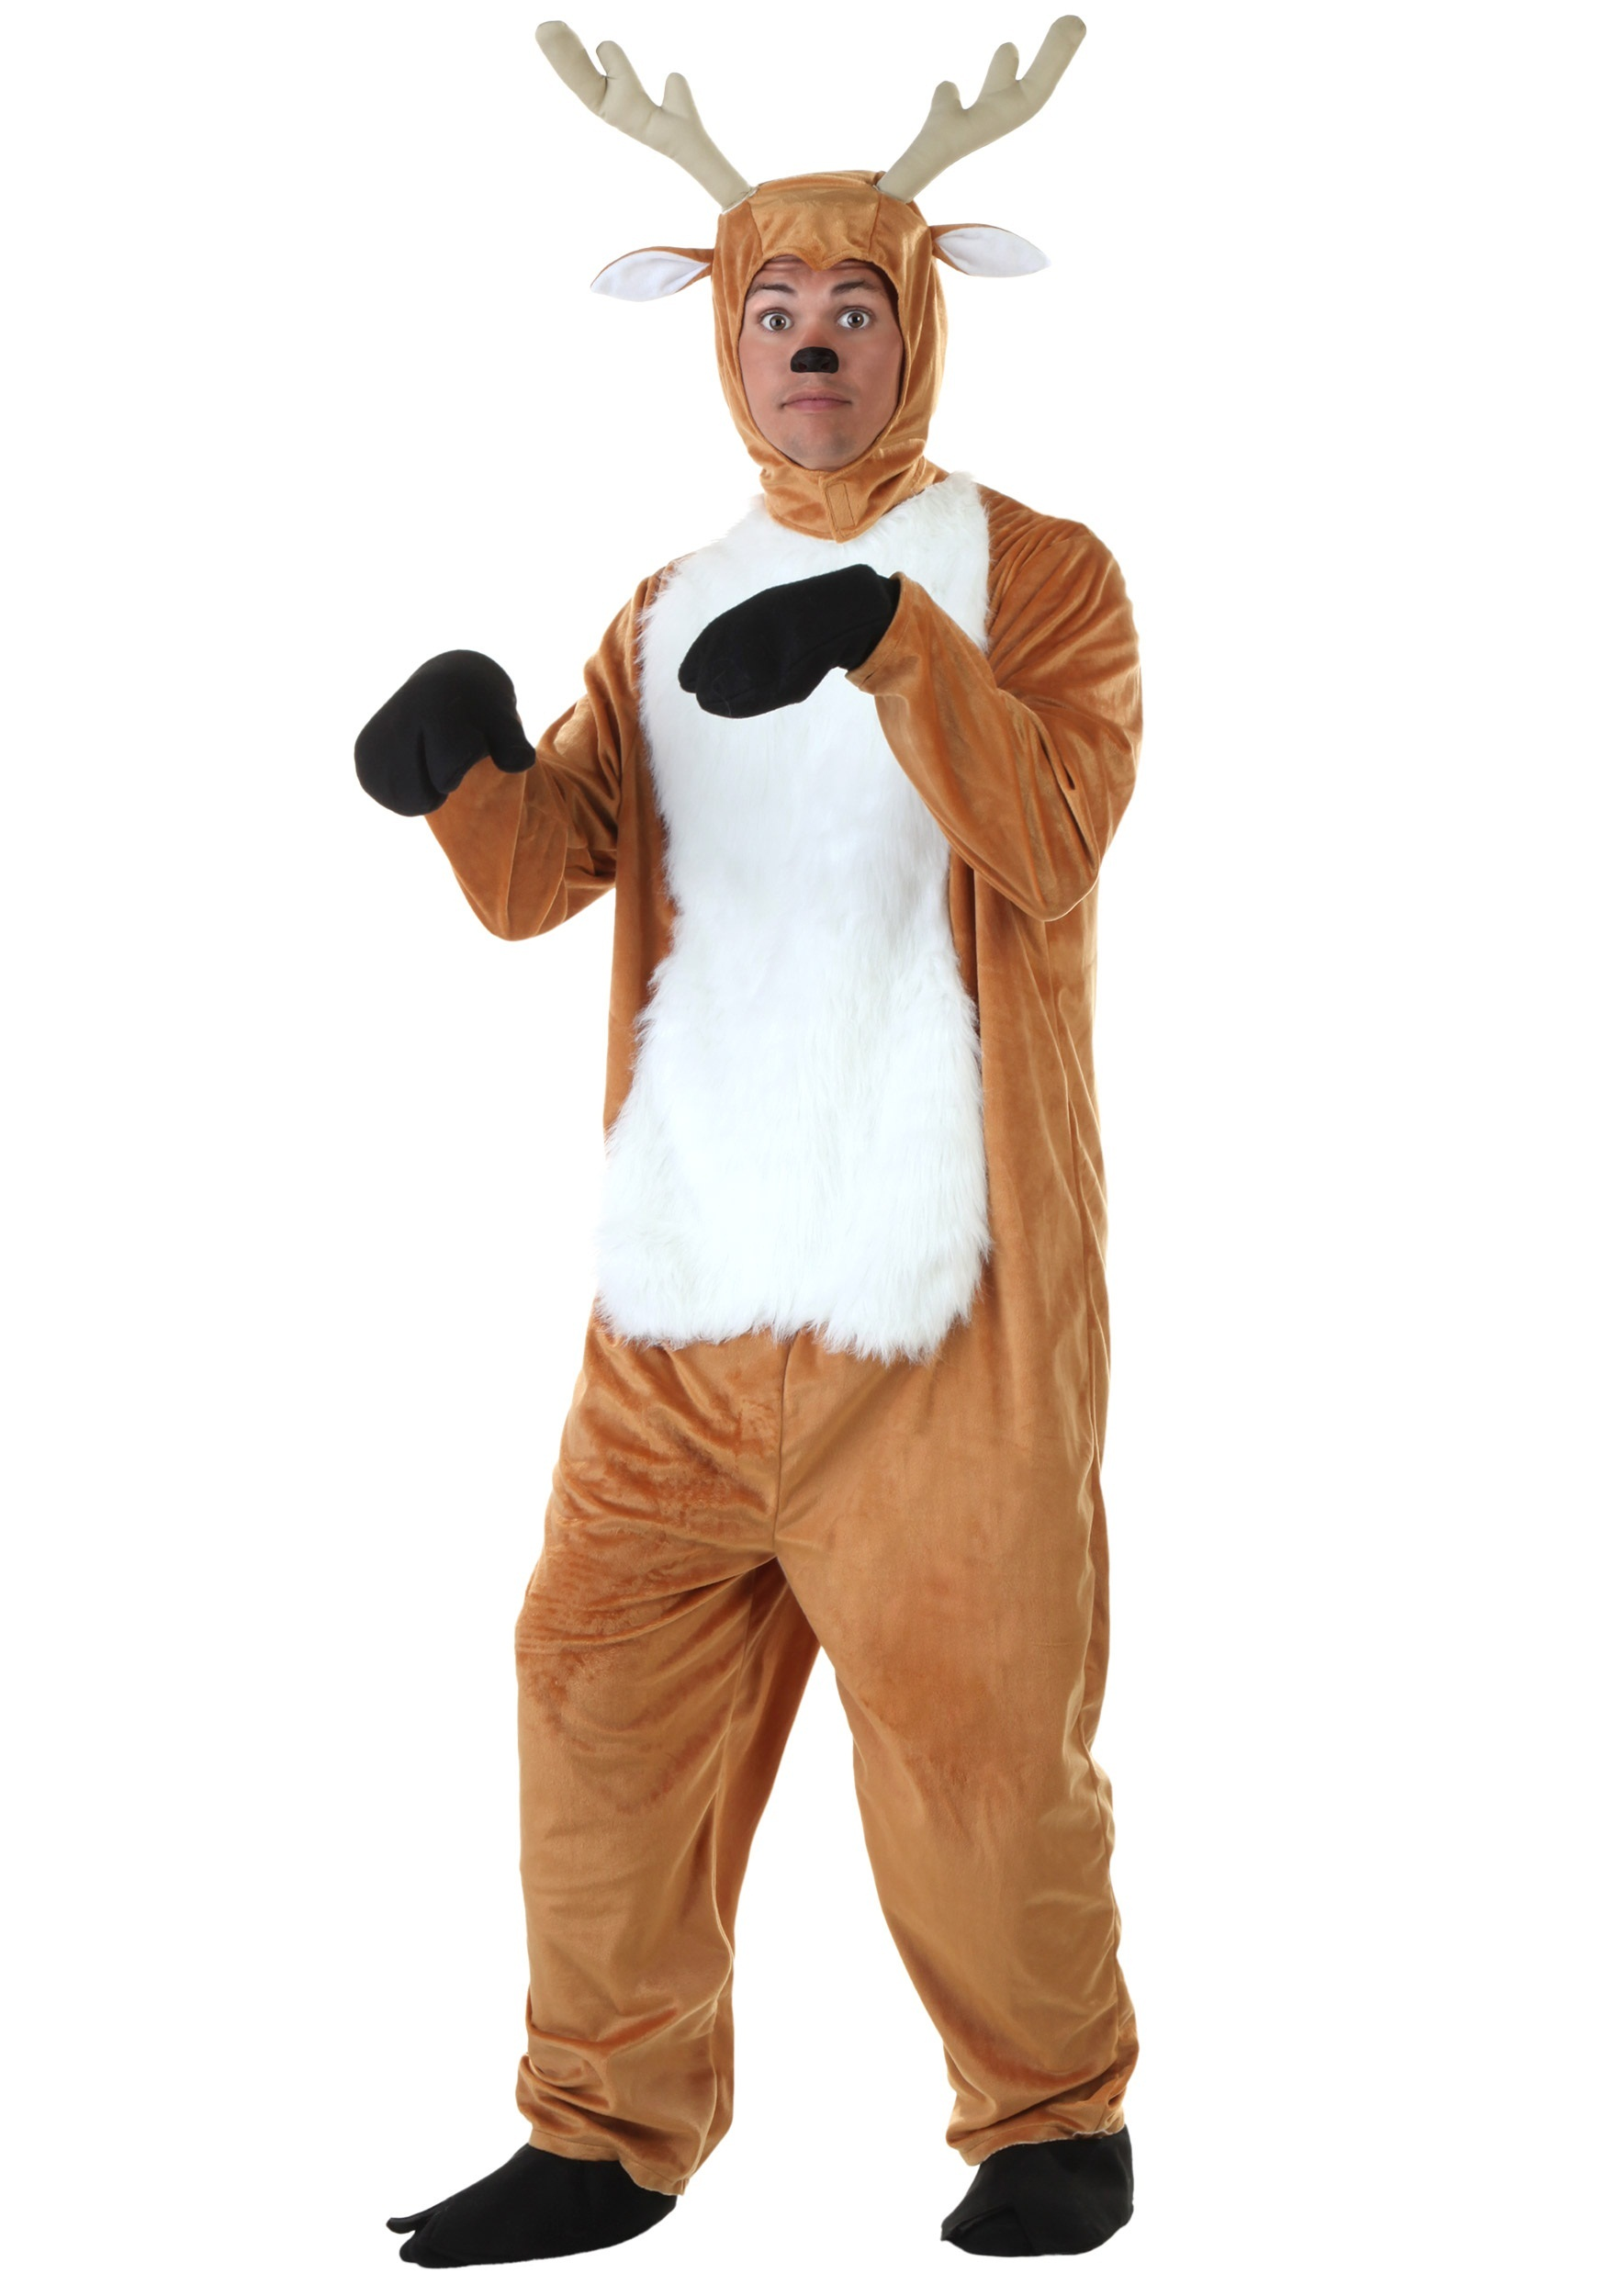 Plus Size Deer Costume for Adults 2X 3X 4X 5X